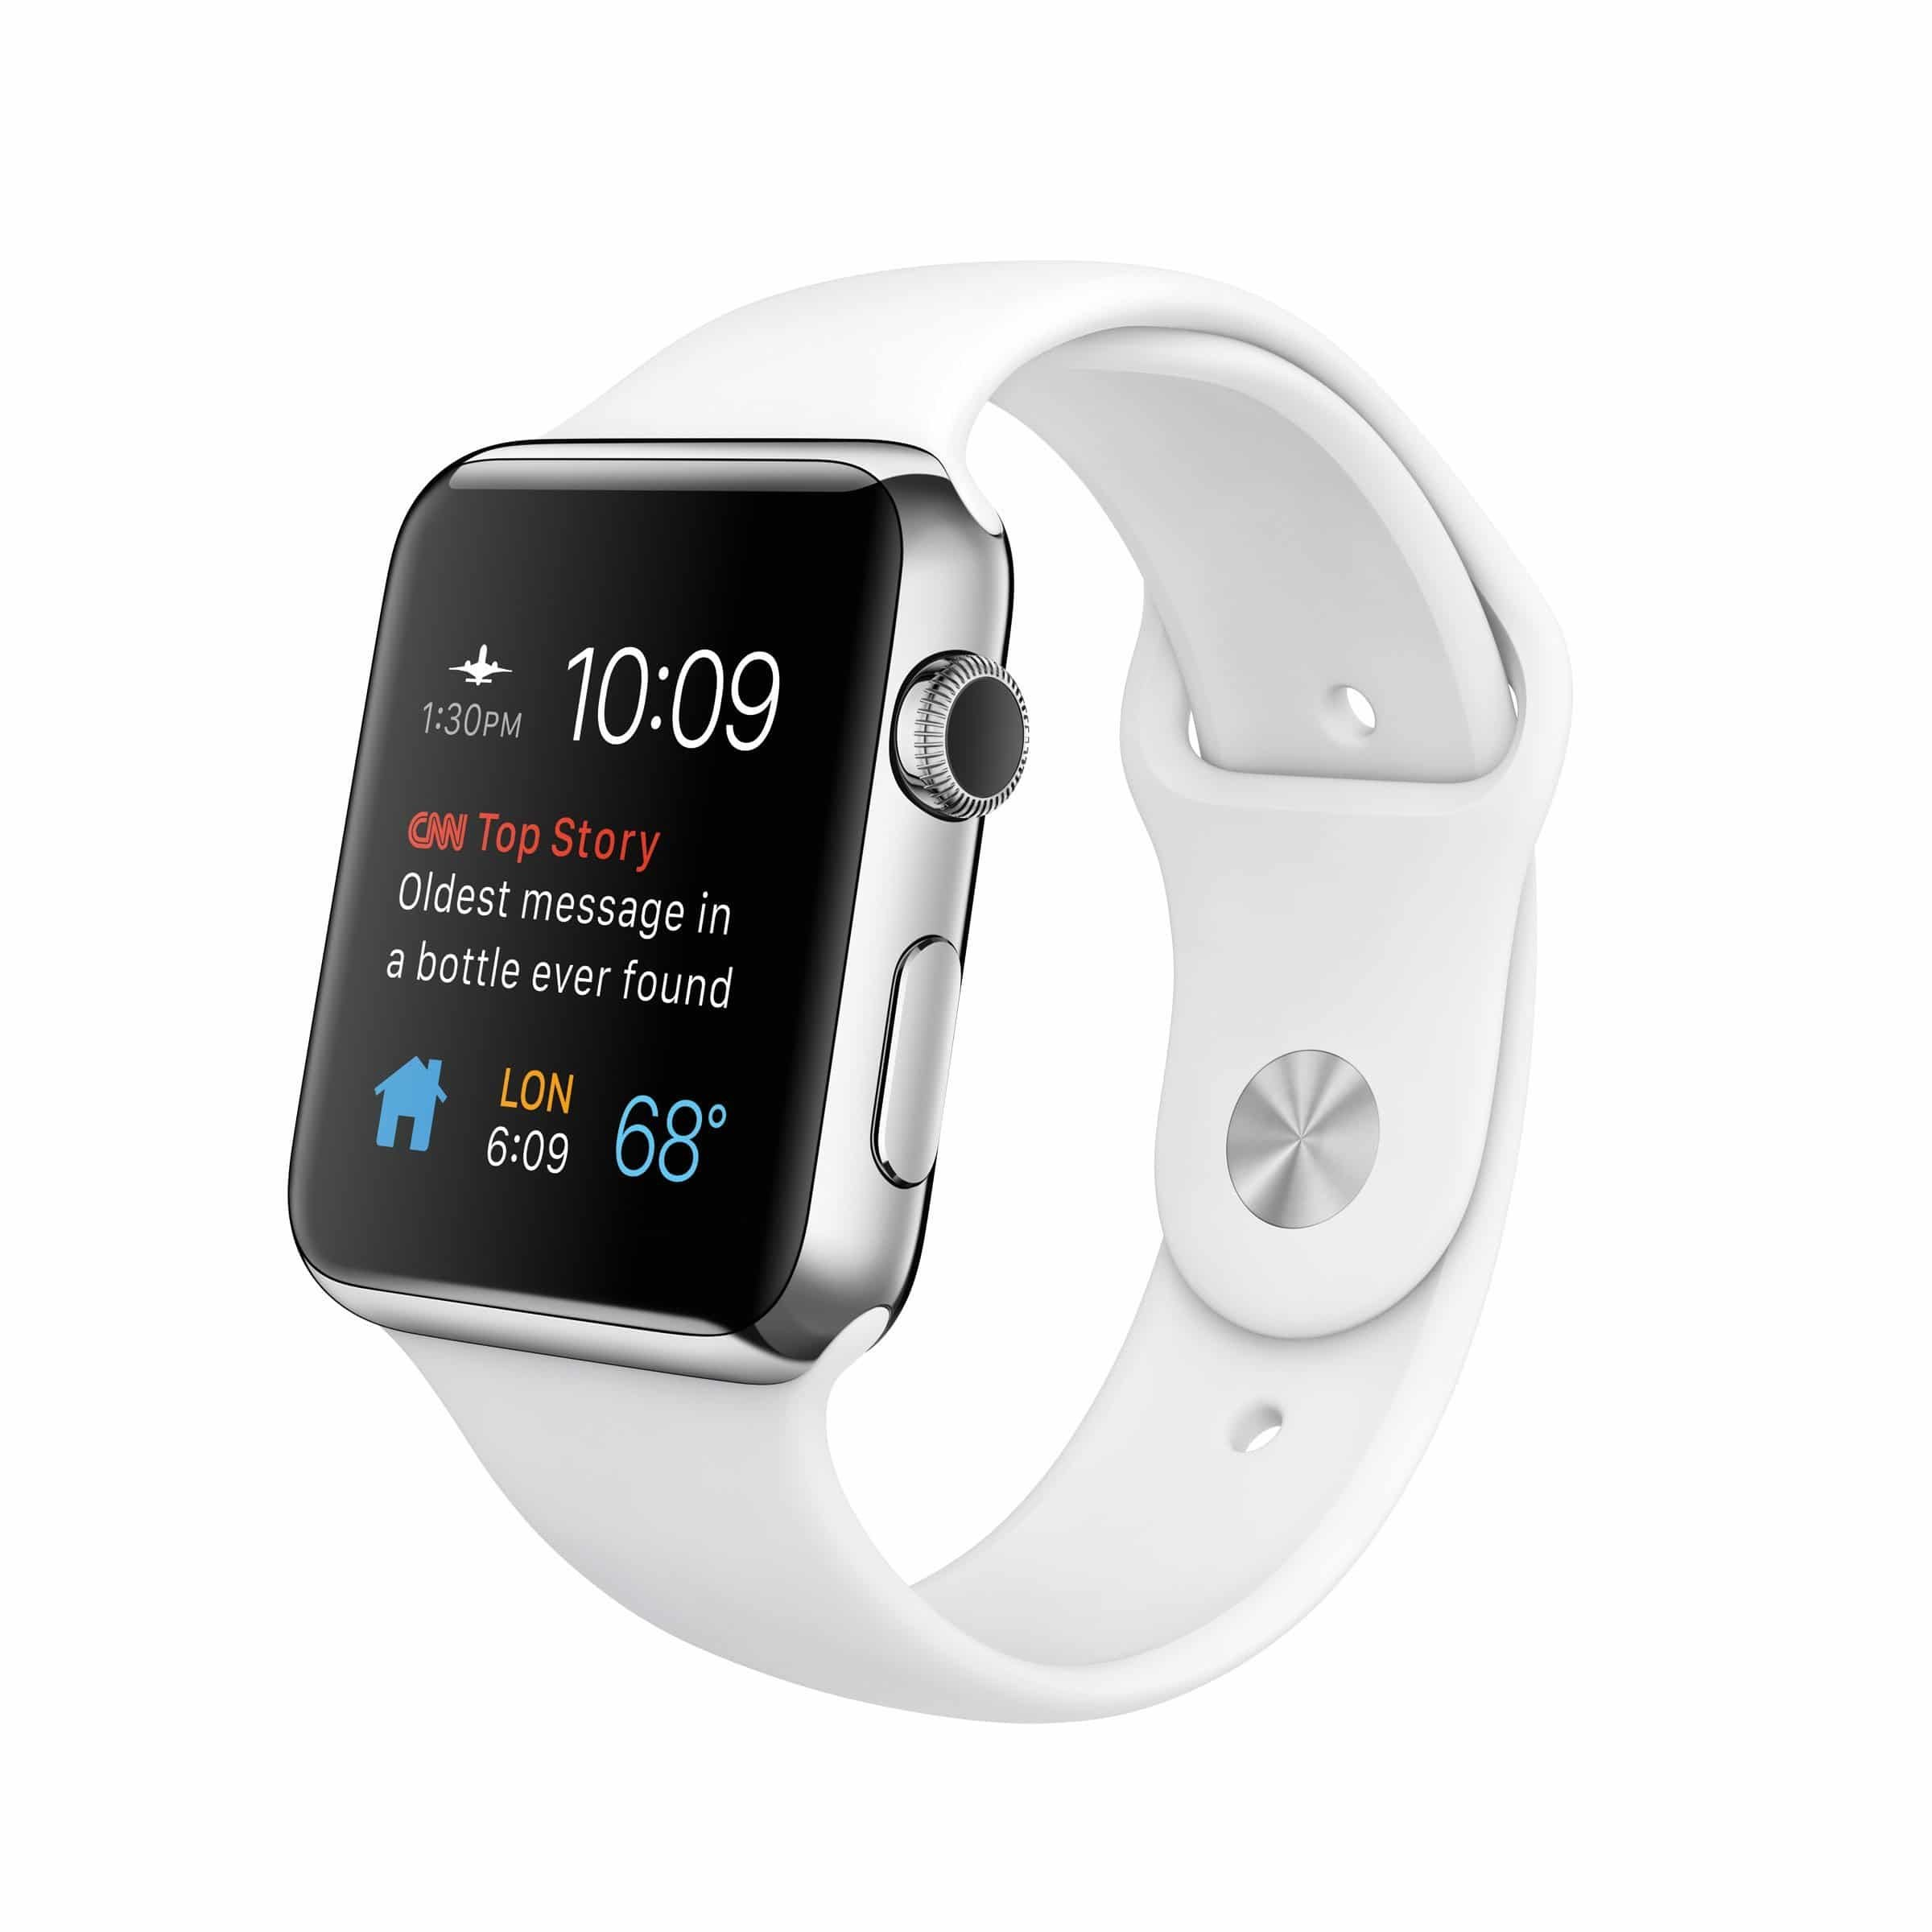 Apple Watch - Komplikationen von Drittherstellern